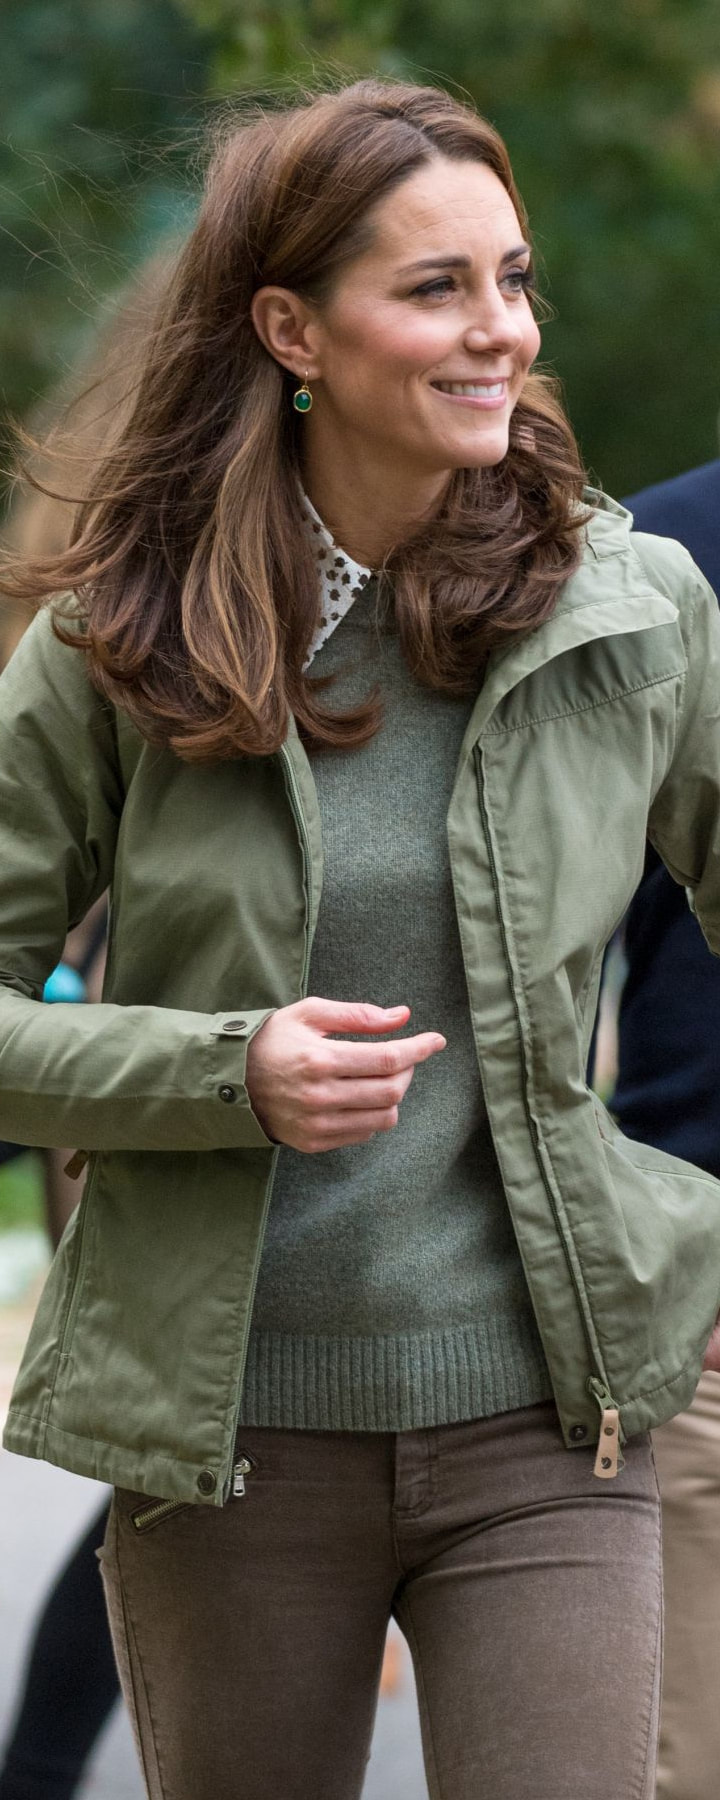 Joseph Rainer Bud Print Blouse as seen on Kate Middleton, the Duchess of Cambridge